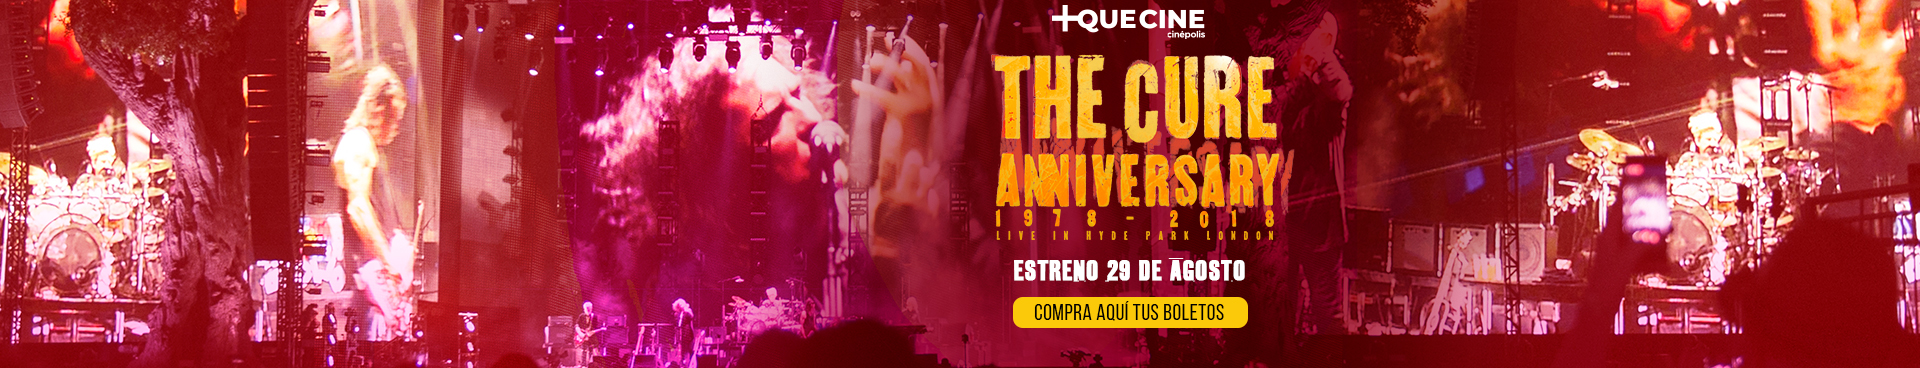 +Que Cine: The Cure